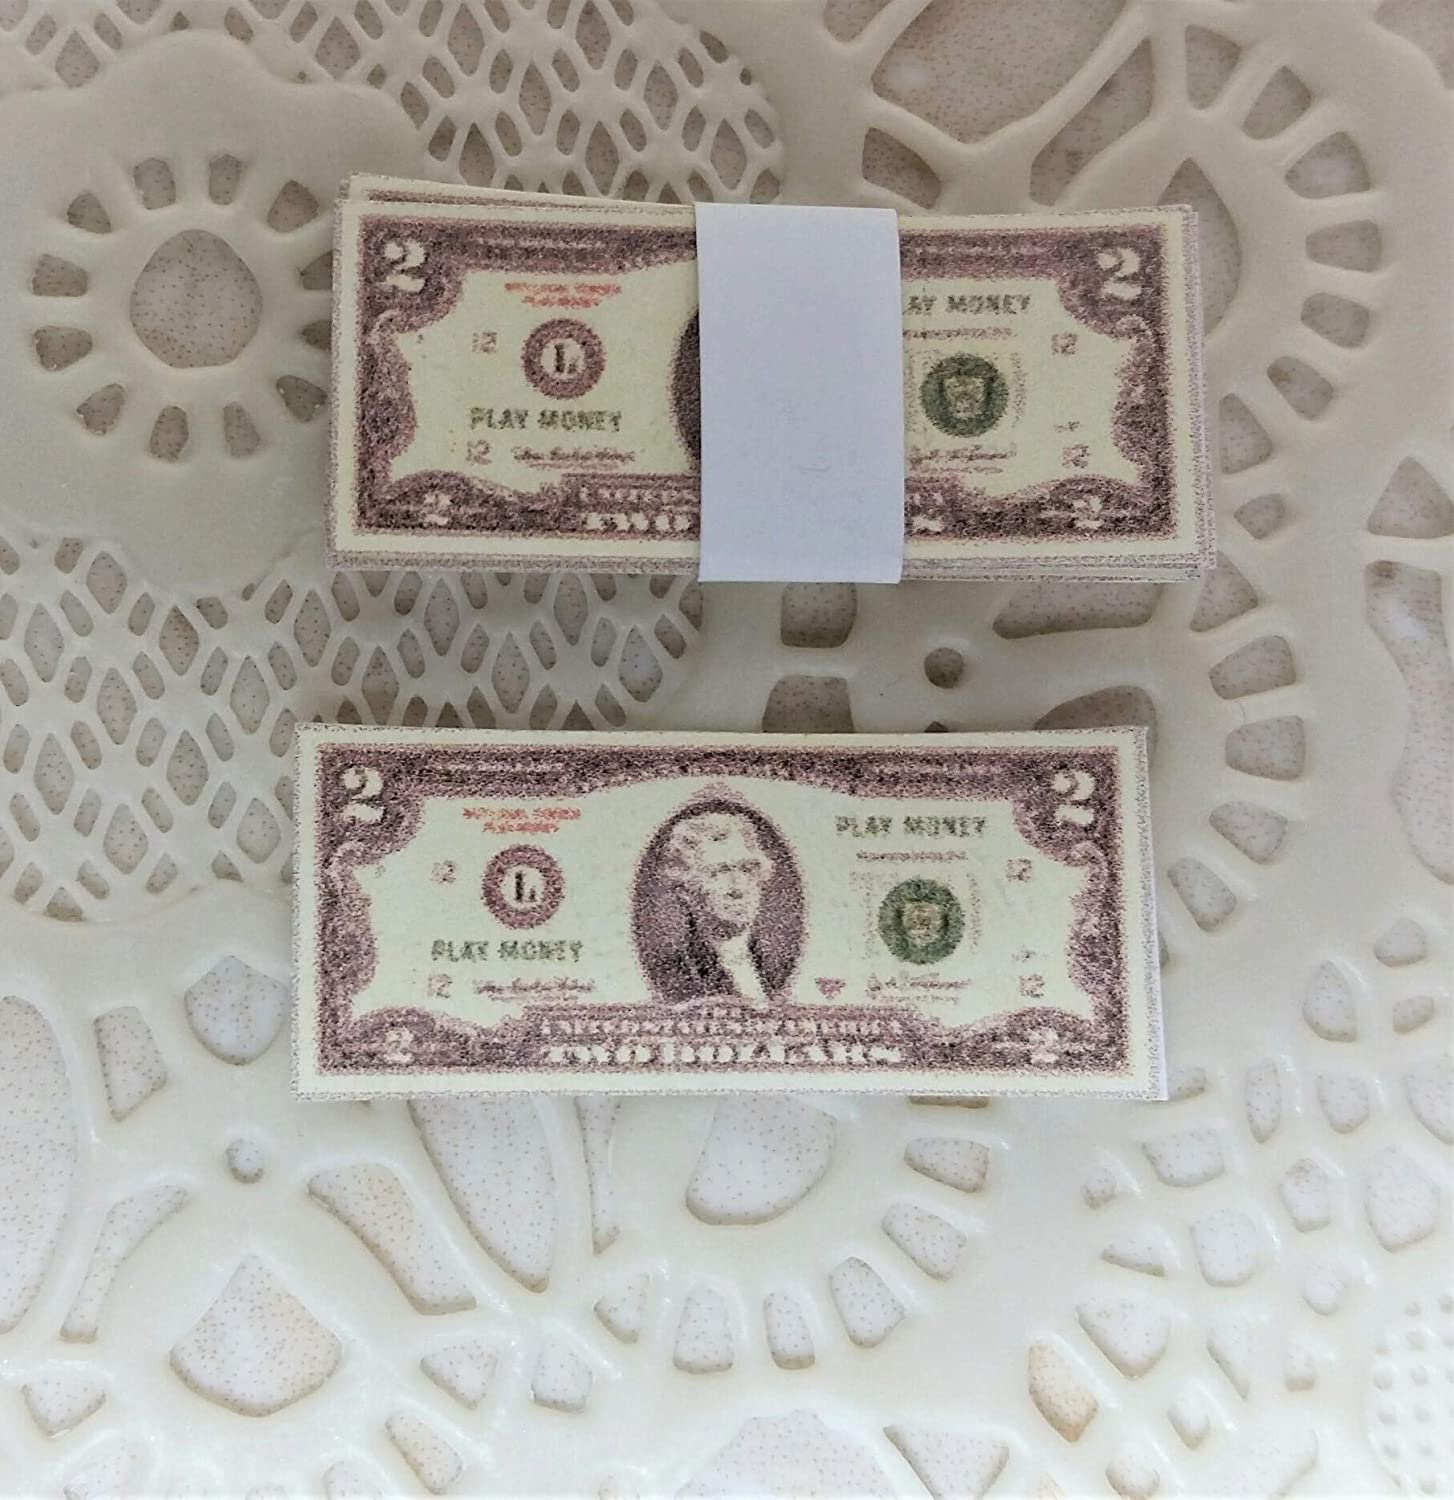 1//12 Scale Dollhouse Money Banknotes US Currency Decor for BJD Accessories C